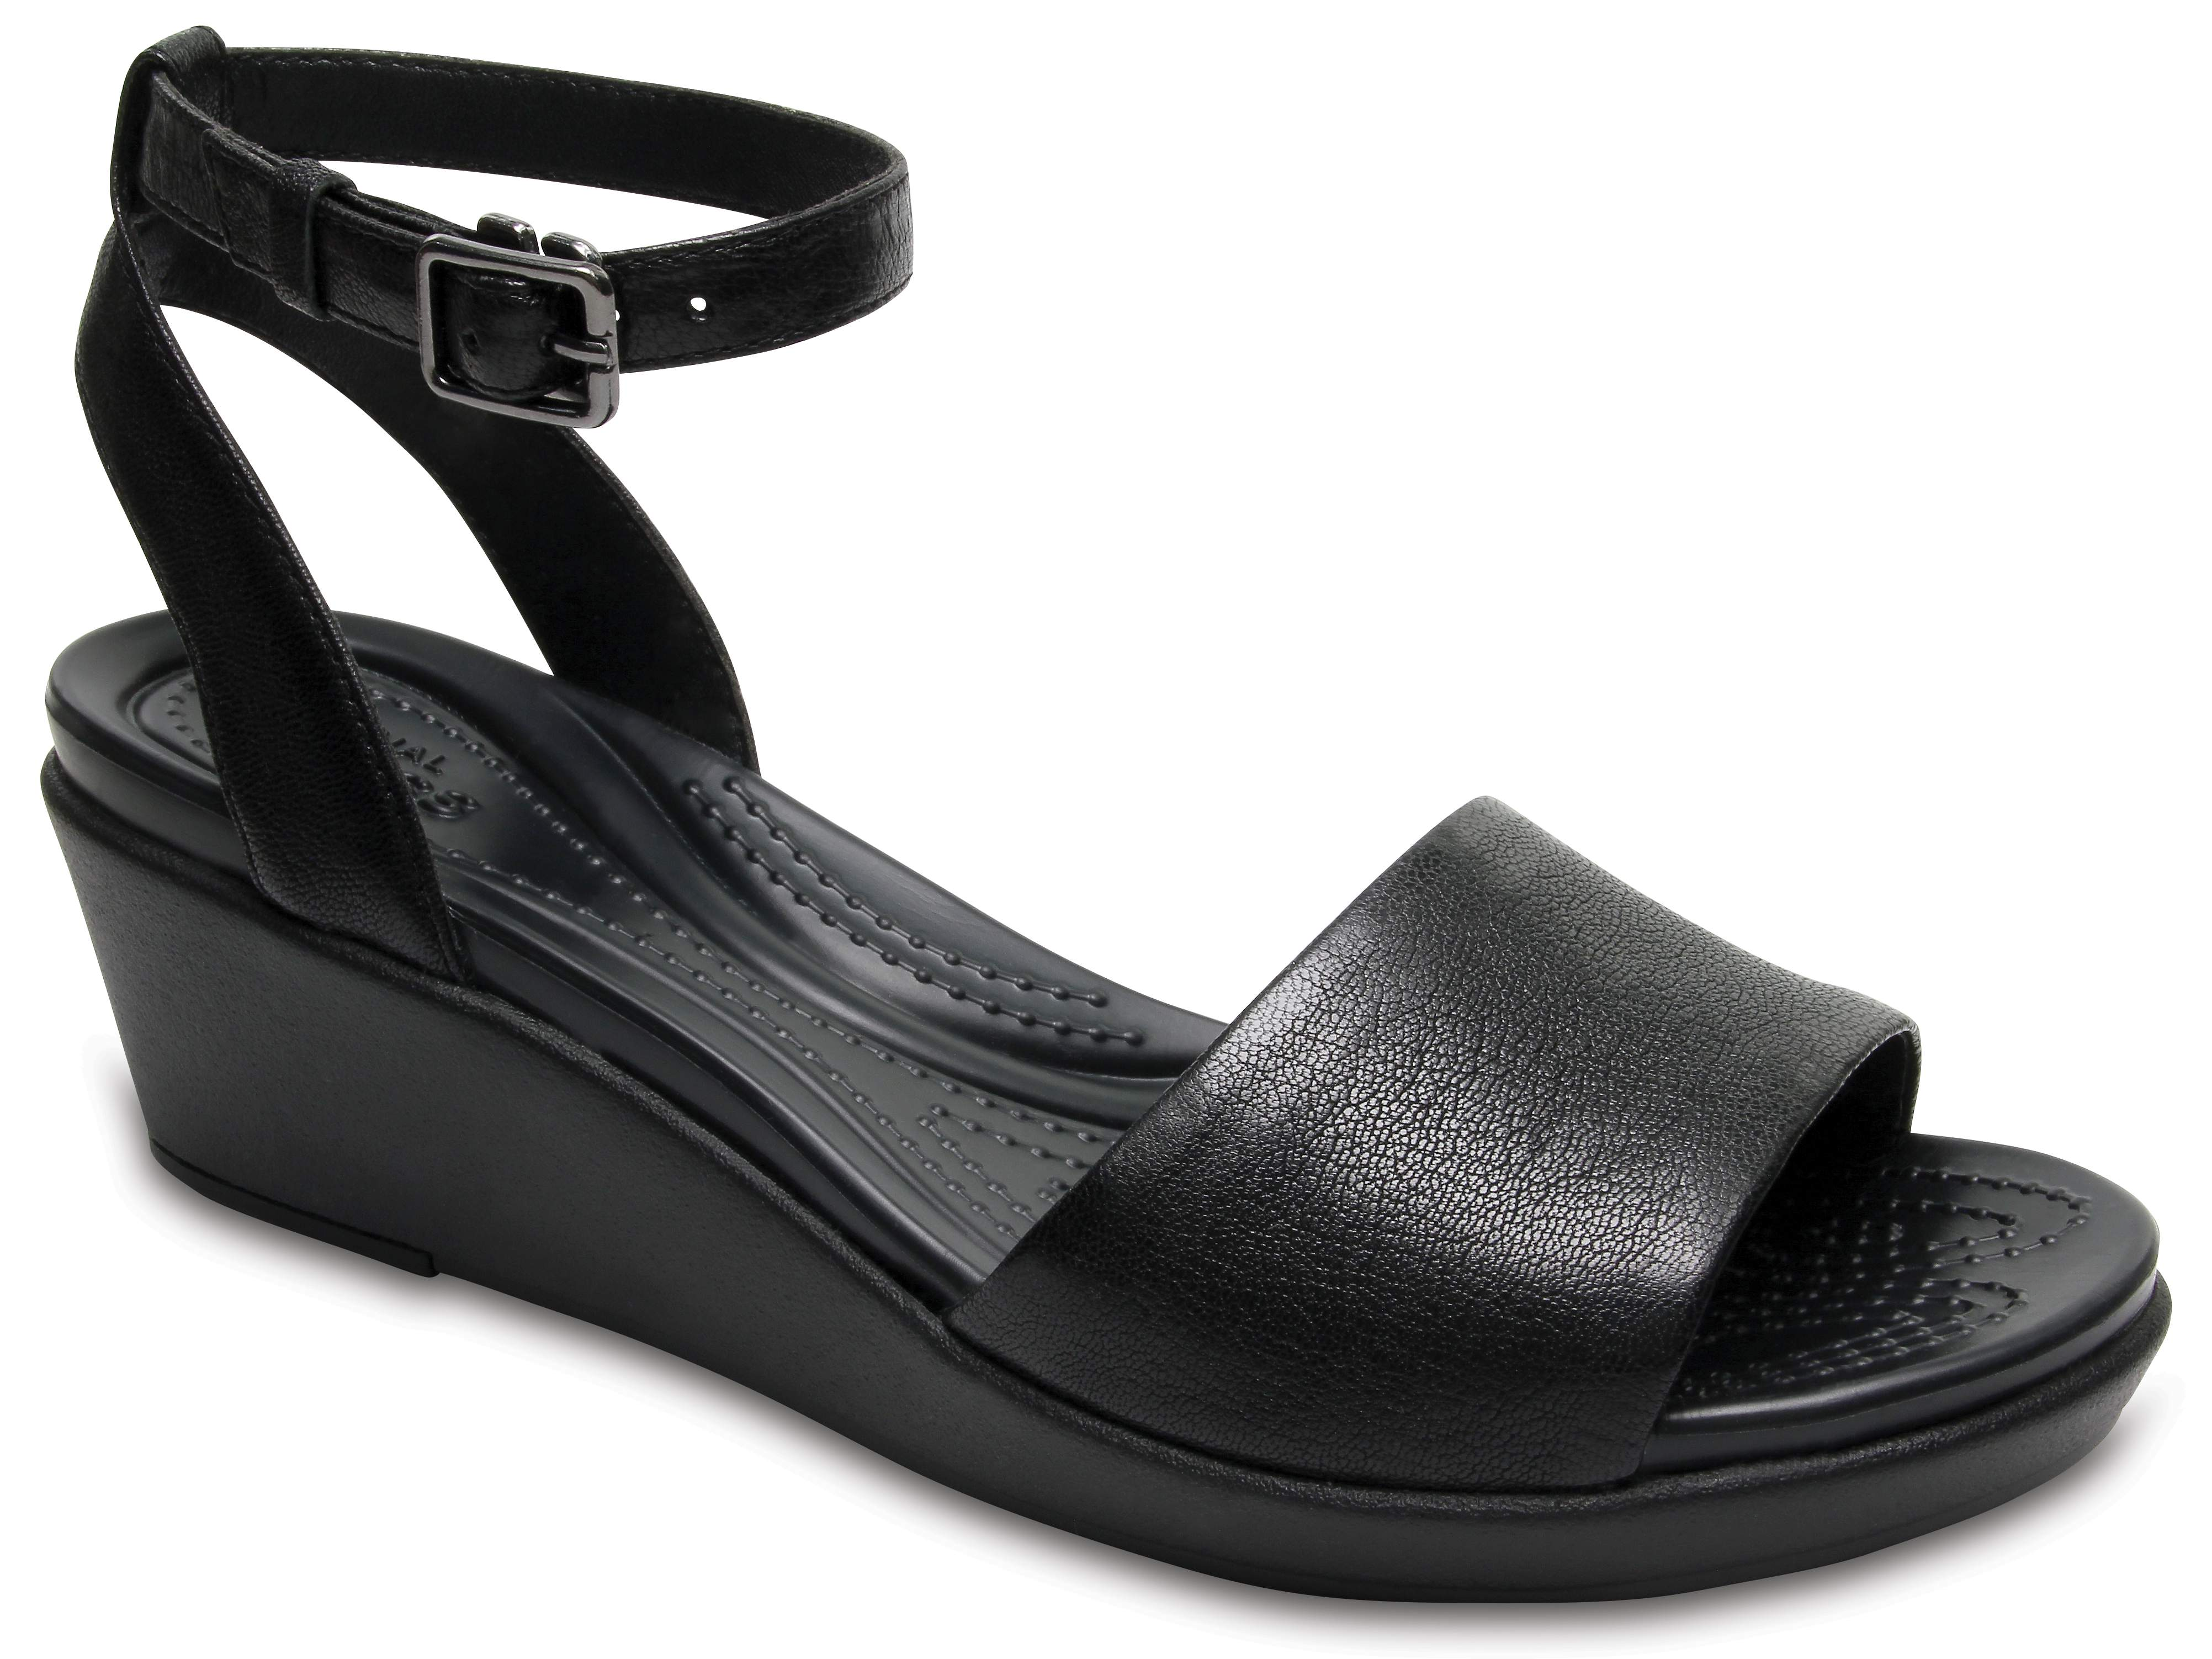 Crocs Leigh-Ann Wedge Leather